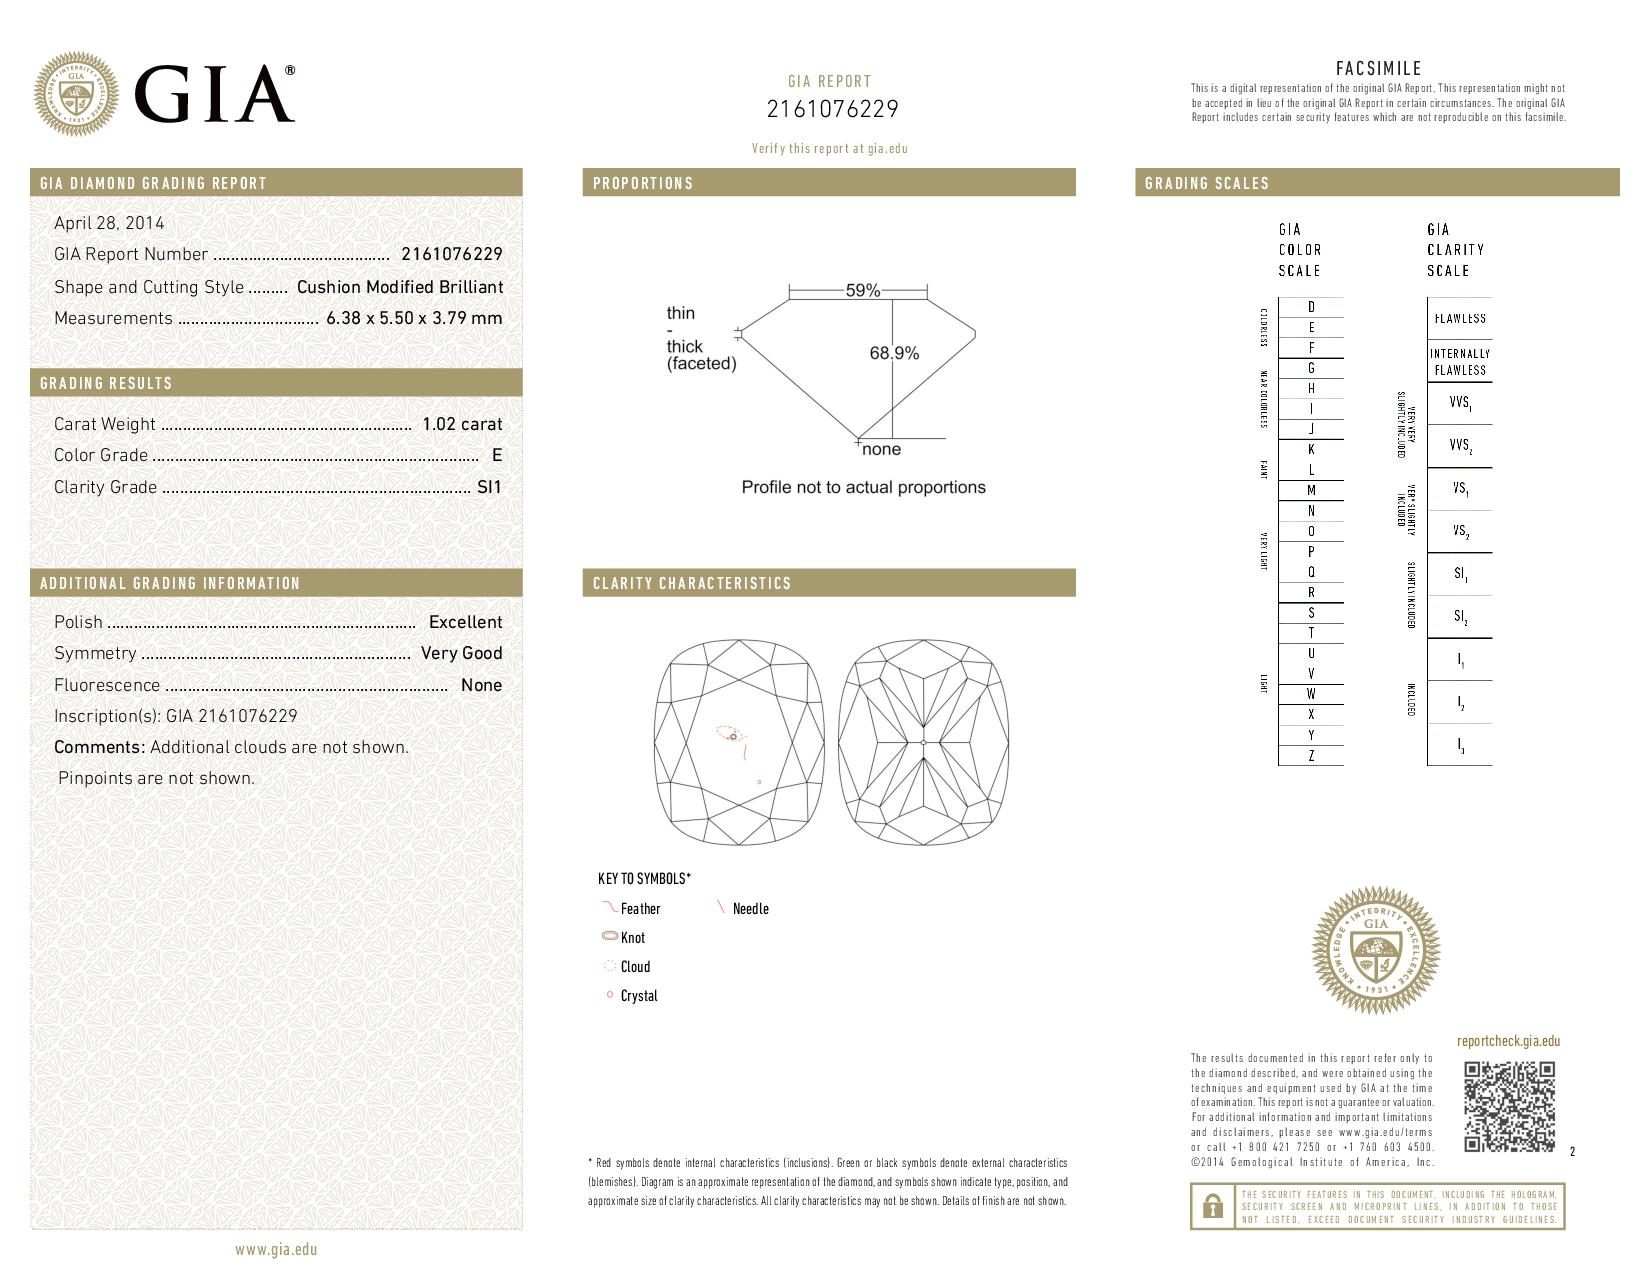 This is a 1.02 carat cushion shape, E color, SI1 clarity natural diamond accompanied by a GIA grading report.